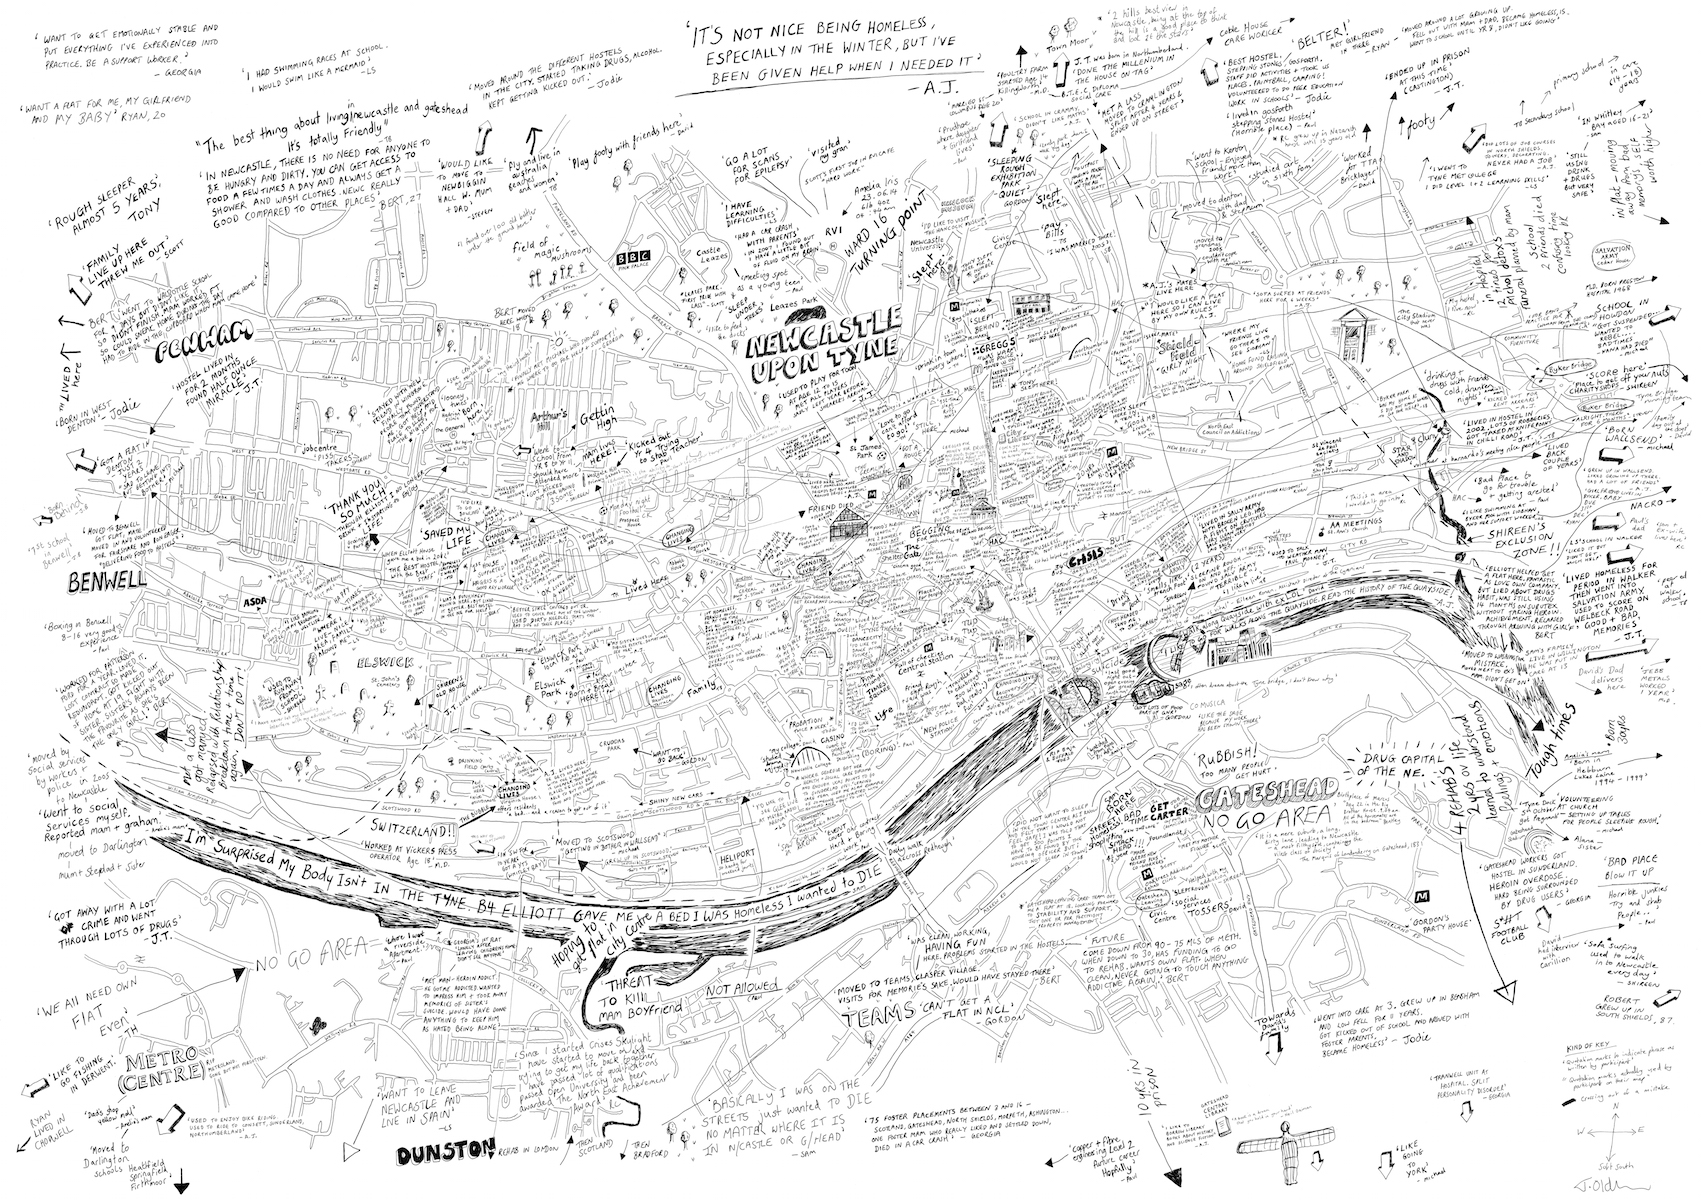 A collaboration with 30 homeless people living in Newcastle upon Tyne, led by Adele Irving and Oliver Moss from the Department of Social Sciences and Languages at Northumbria University.  The piece maps the participants' life stories, showing how they became homeless and their experience of living on the streets of the city and getting help from various organisations. Read more about the project  here.